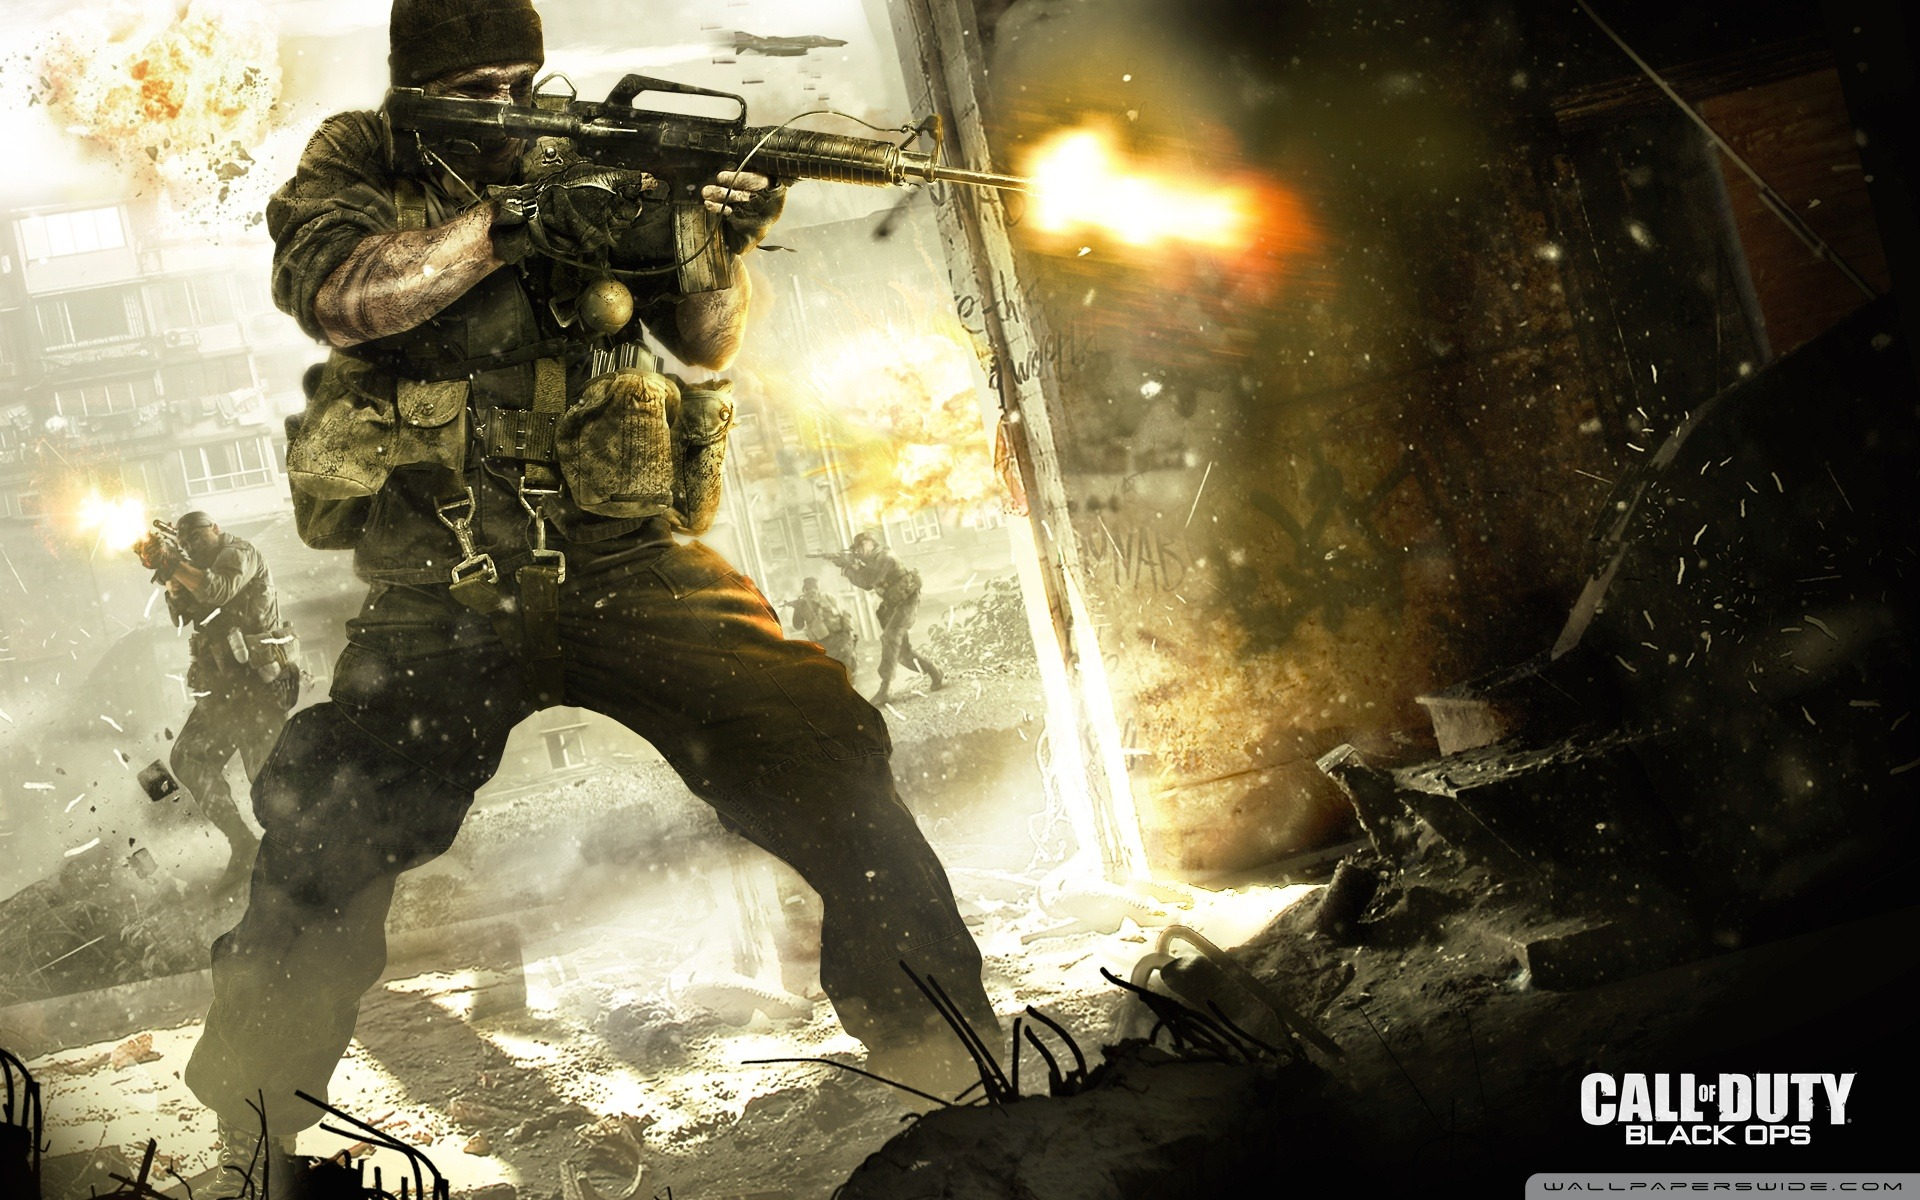 Call Of Duty Modern Warfare 3 Hd Game Wallpaper 05 Preview